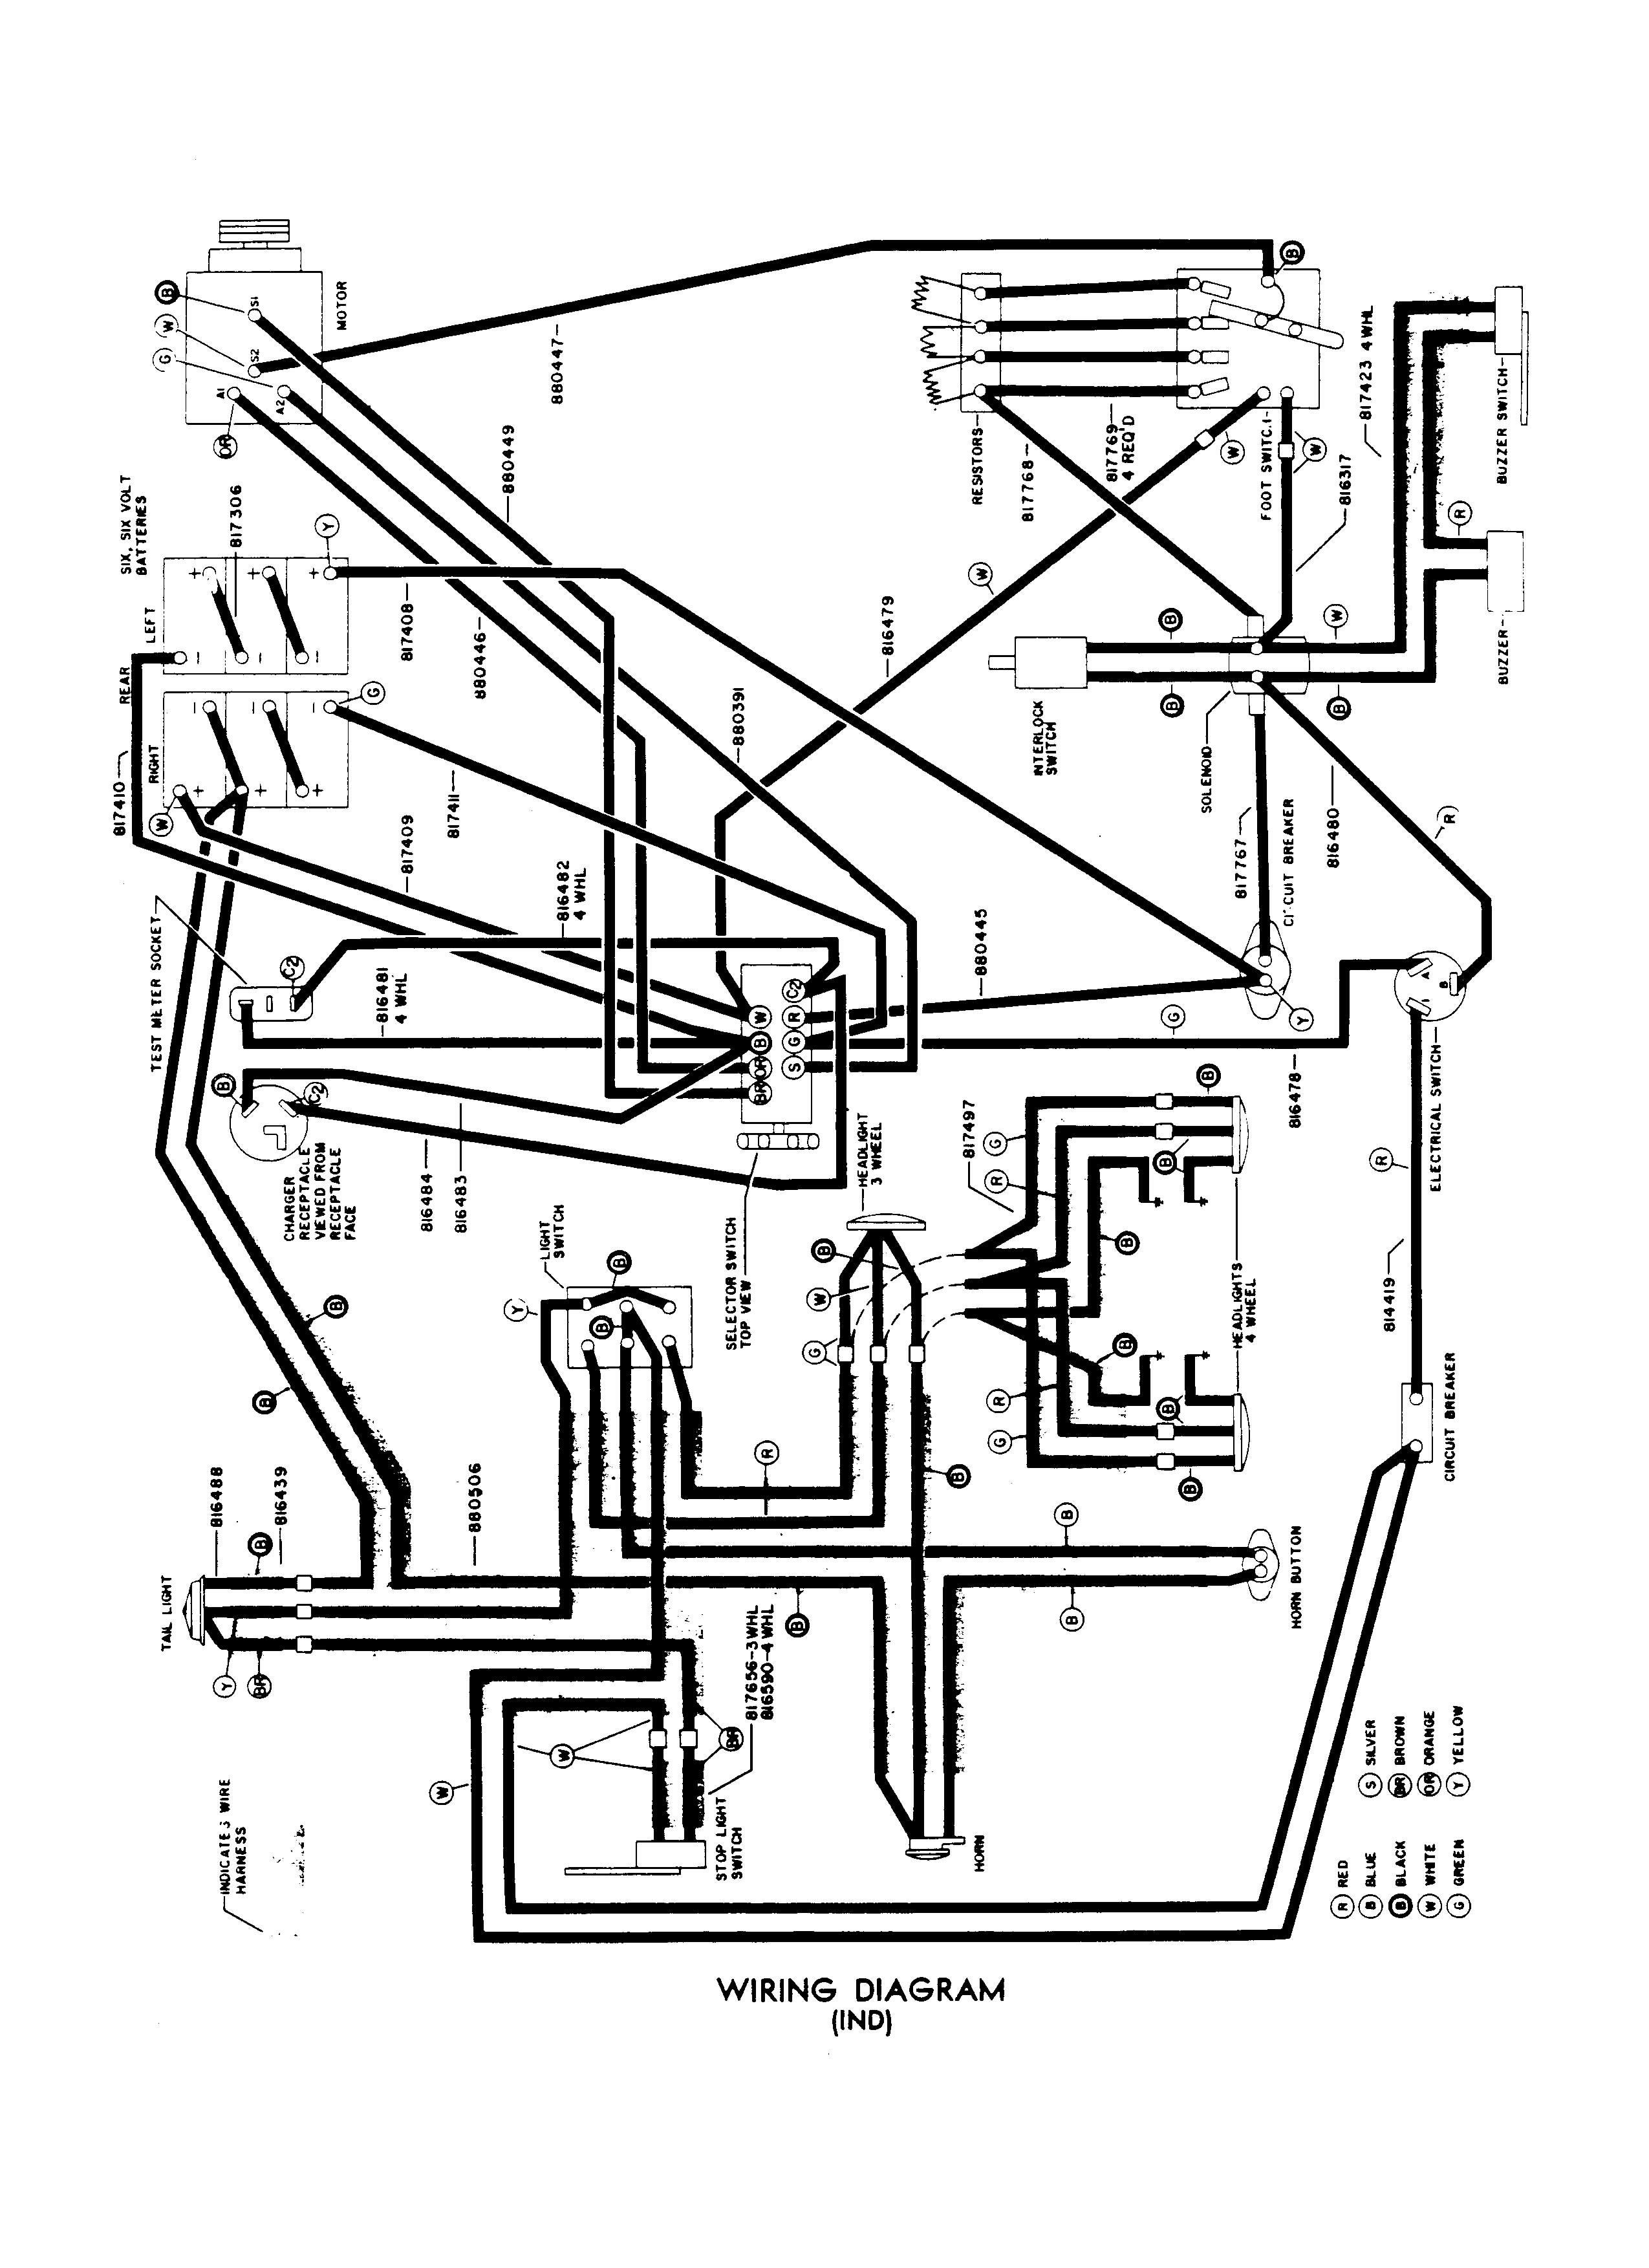 wiring diagram for ezgo electric golf cart bt 7217  wiring diagram together with cushman golf cart 36 volt  wiring diagram together with cushman